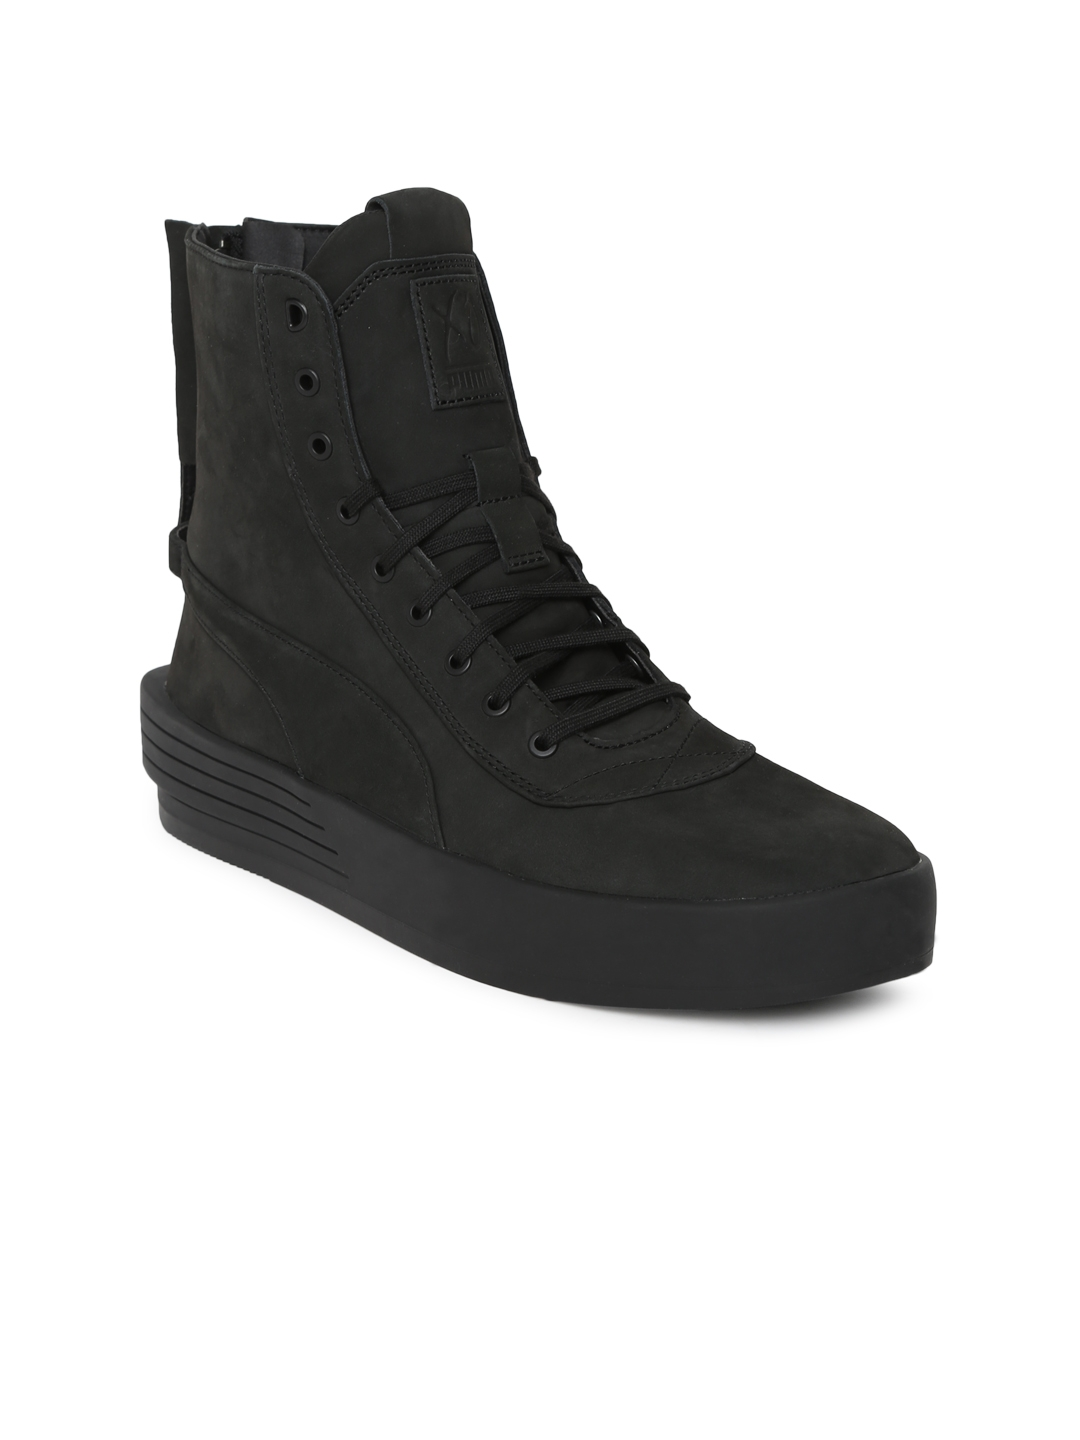 aaf1a37852d Buy Puma Unisex Black PUMA XO PARALLEL Leather High Top Sneakers ...